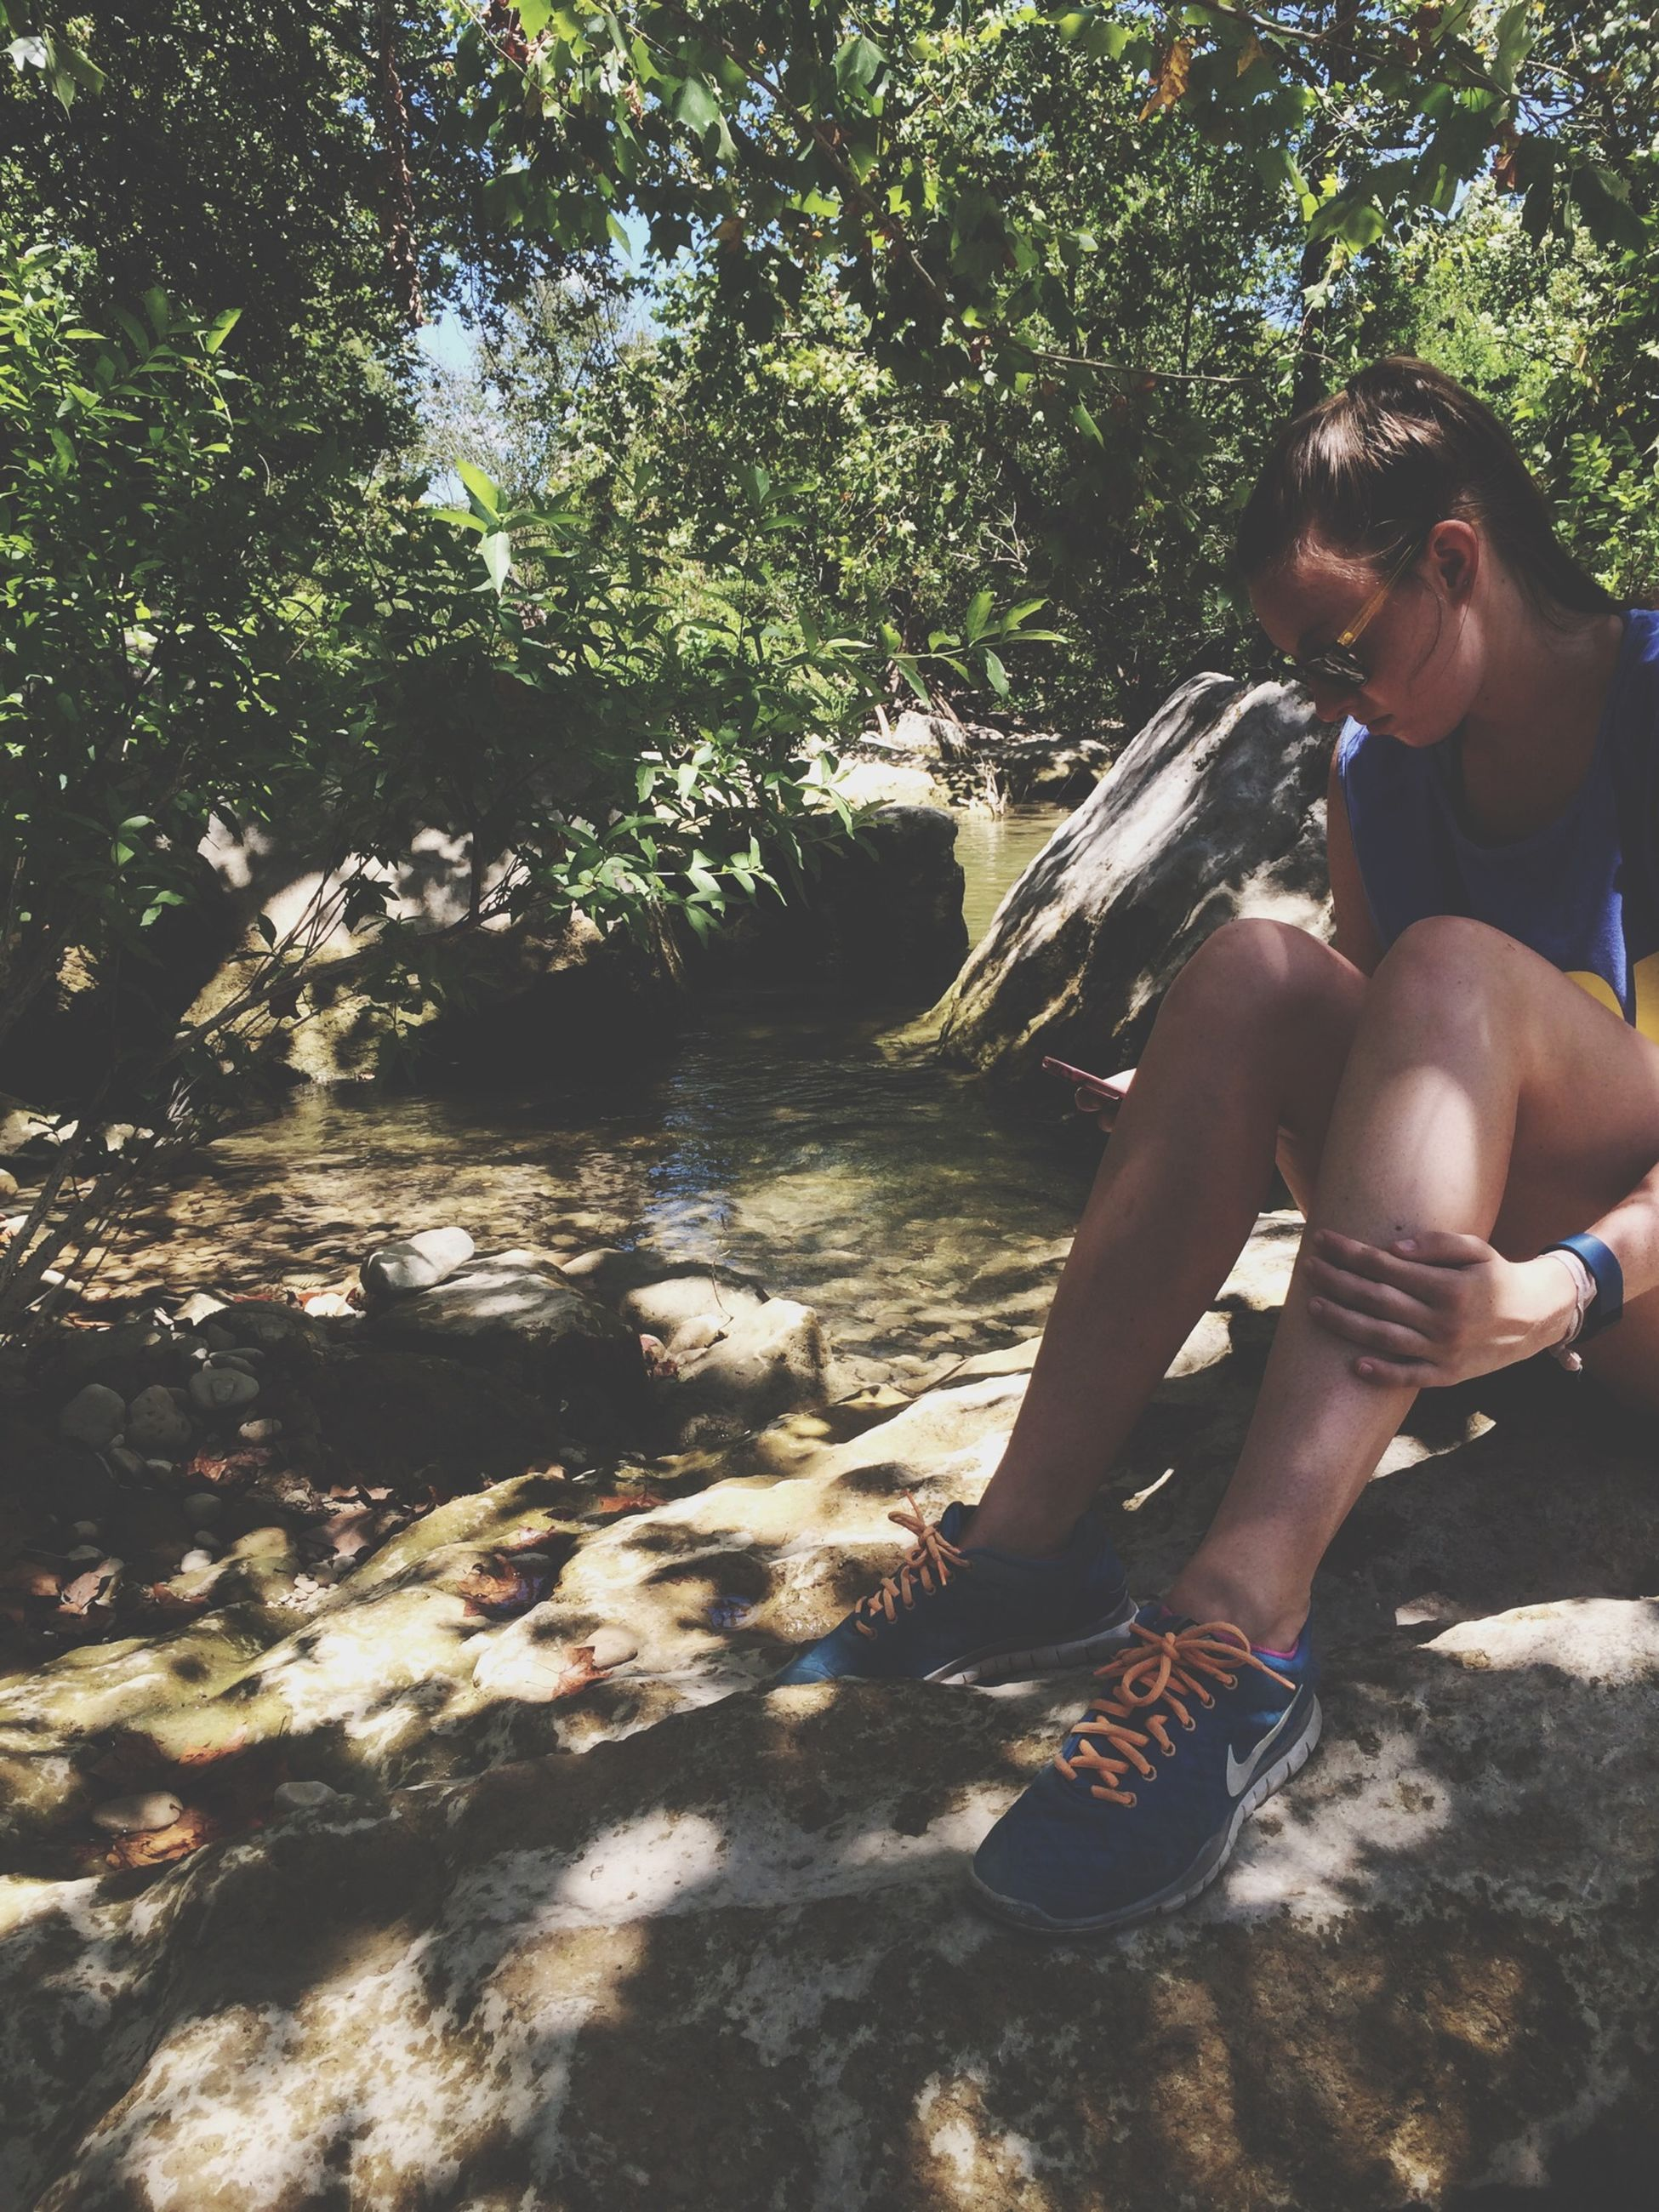 lifestyles, leisure activity, water, person, tree, young adult, casual clothing, full length, sunlight, nature, childhood, young women, day, outdoors, rock - object, standing, beach, sitting